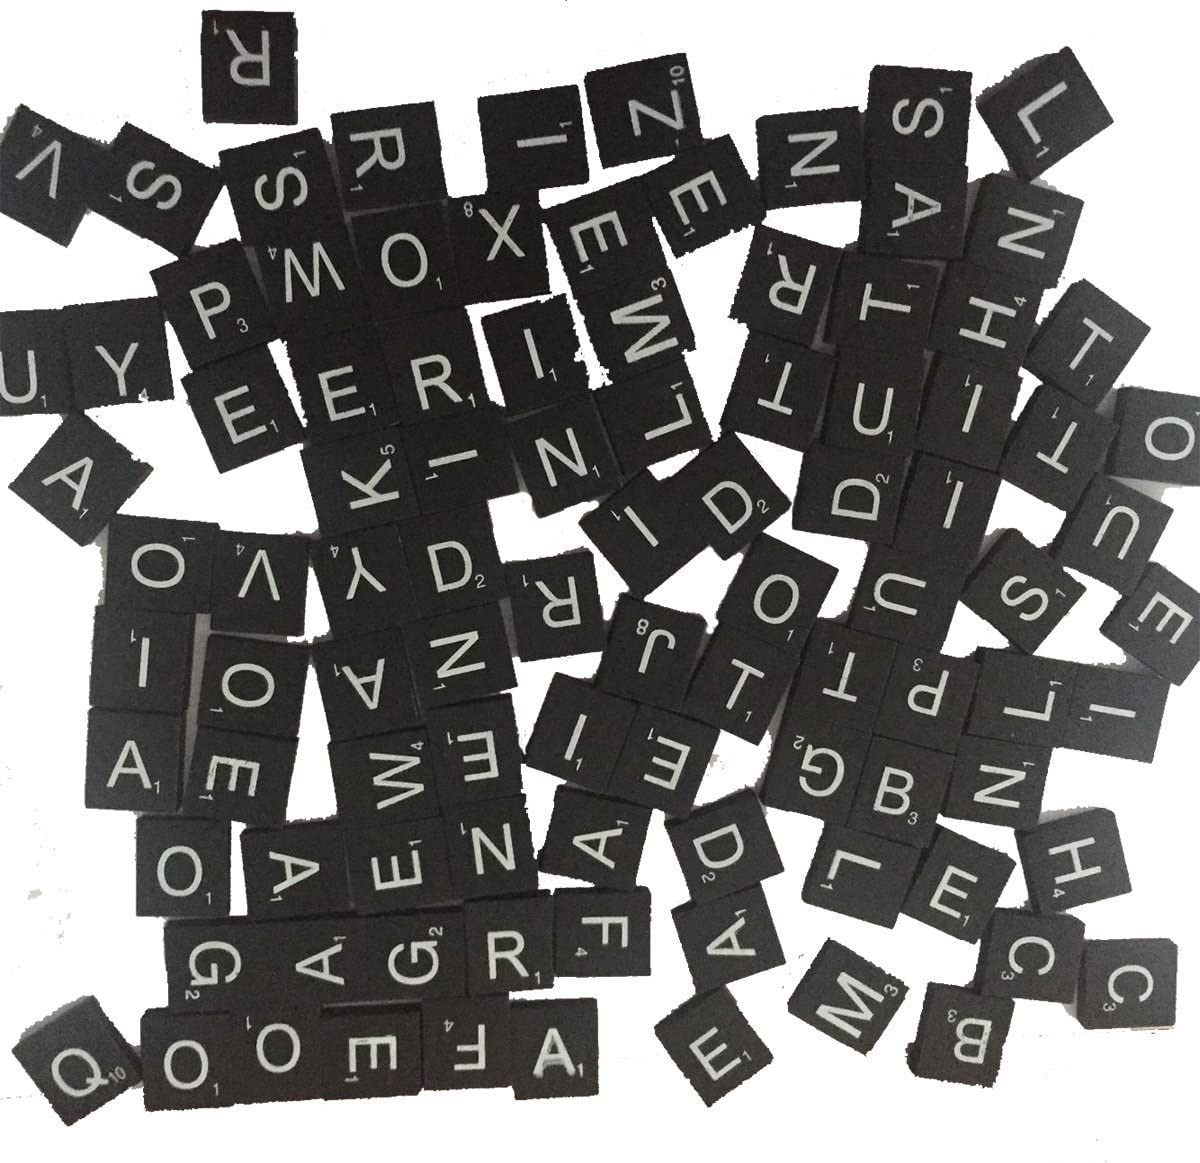 100 Wood Letter Scrabble Tiles - Black Color - 1 Complete Sets - Game Replacement Crafts Weddings Scrapbooking 71tg4nXhPtL